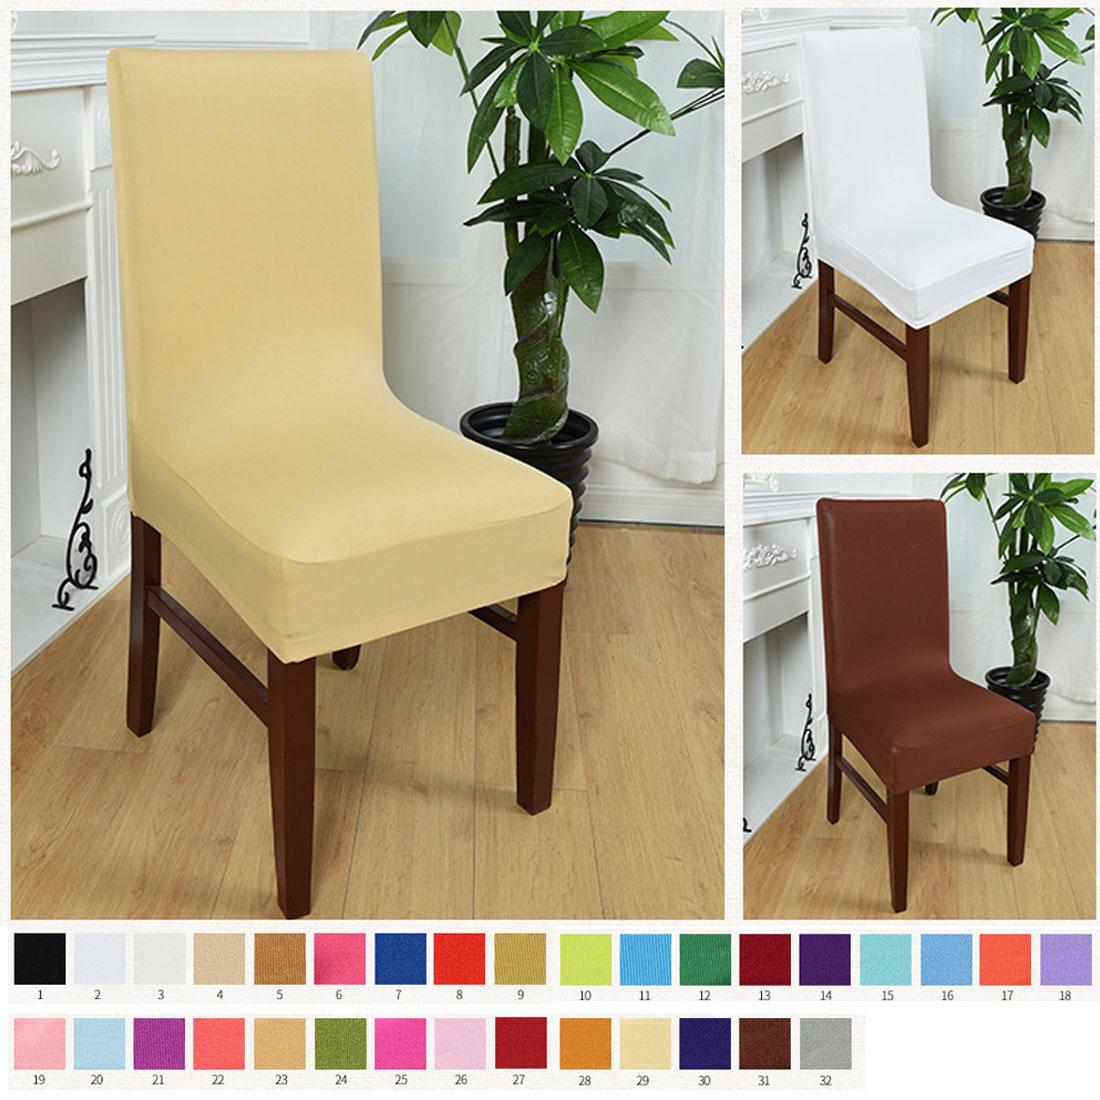 Computer Chair Spandex Strech Dining Room Chair Covers Protector Slipcover Decor Housse De Chaise Seat Covers For Weddings